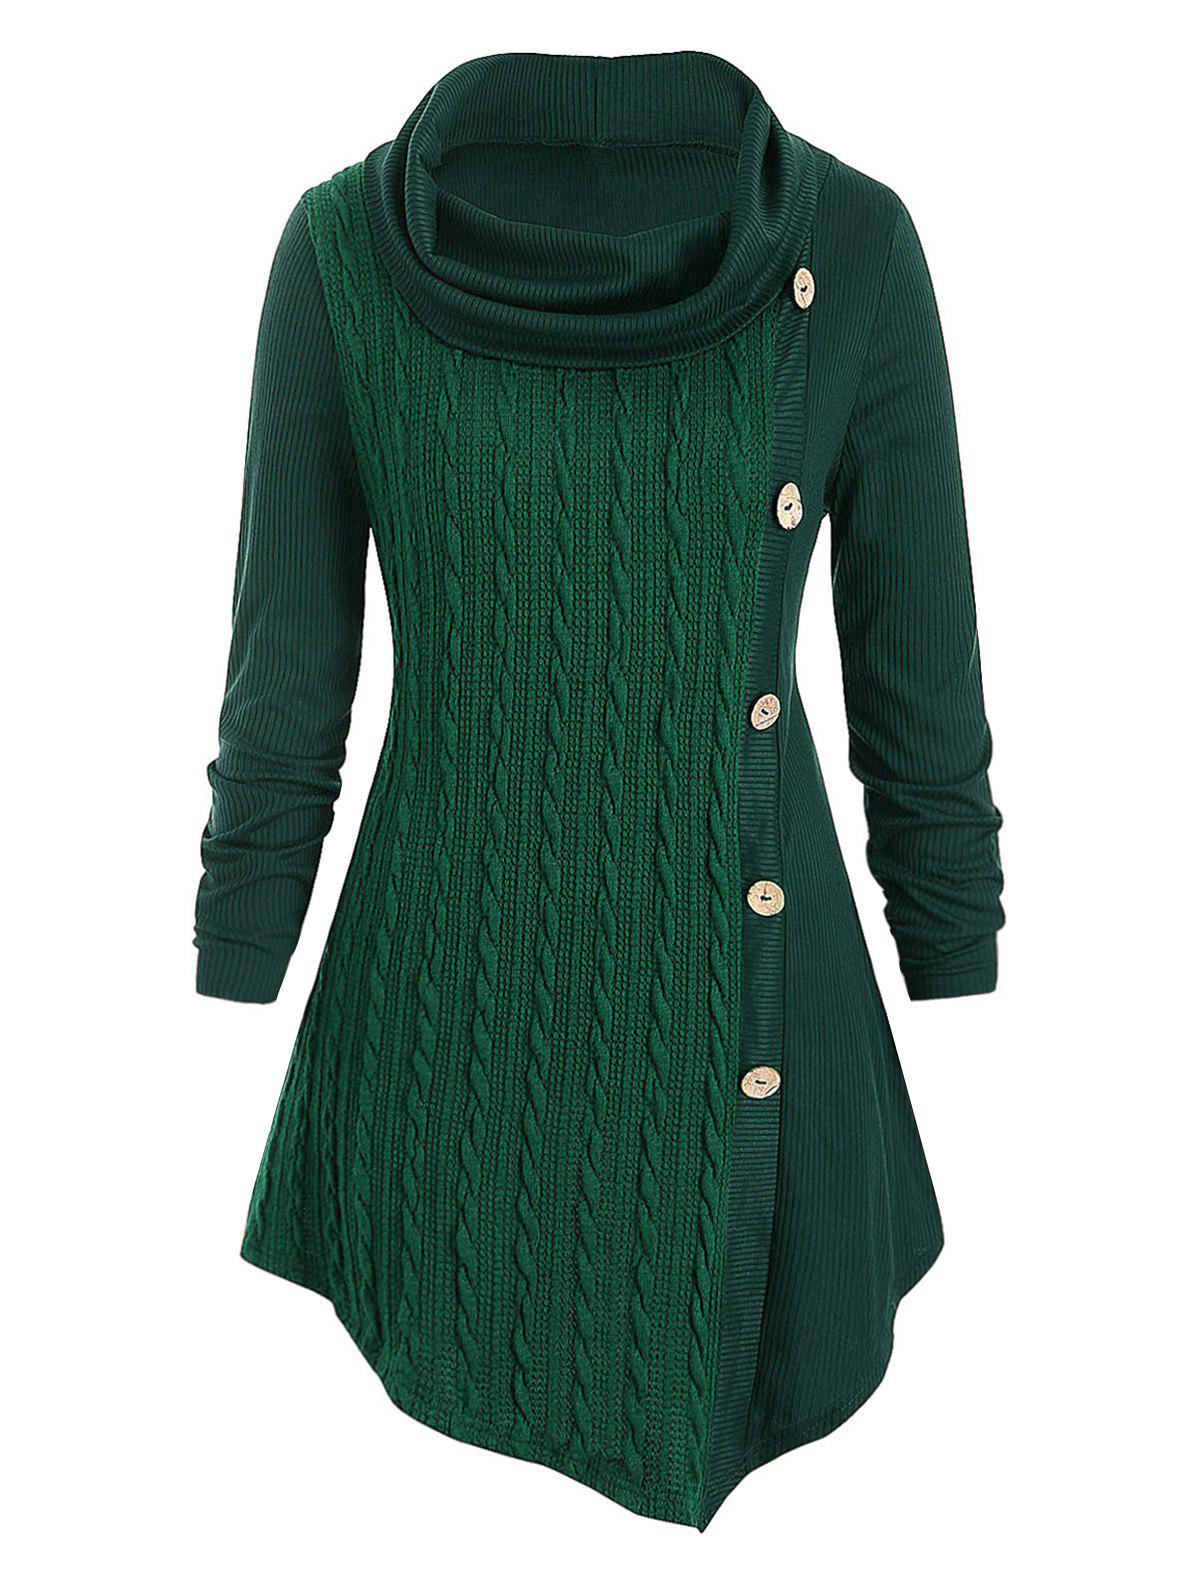 Plus Size Cowl Neck Cable Knit Top - DARK GREEN 1X